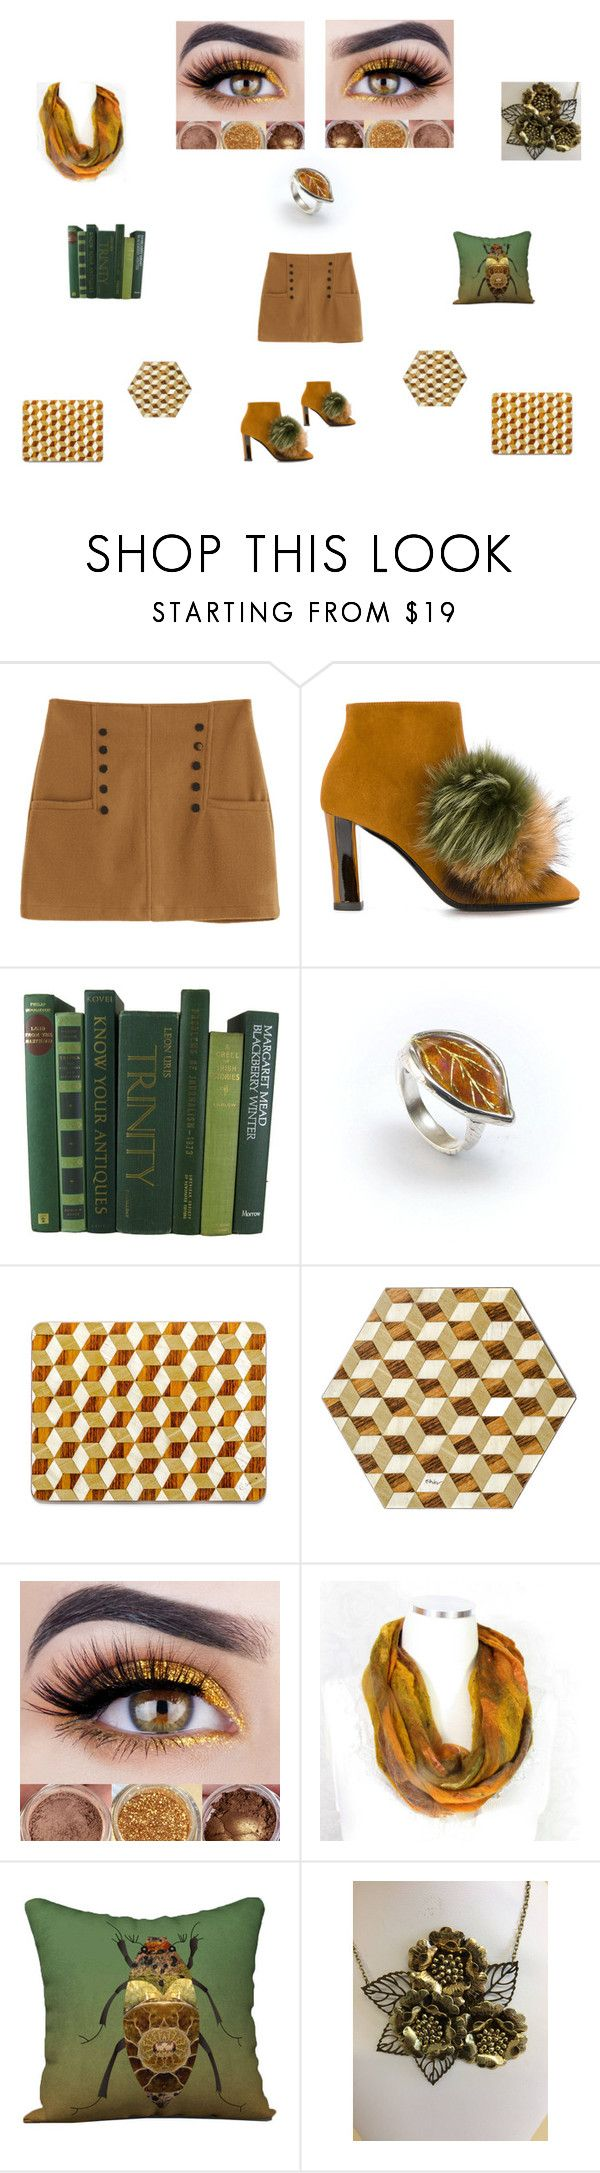 Mustard gold brown green by einder on Polyvore featuring Pollini walnut ivory place mats E Inder Designs